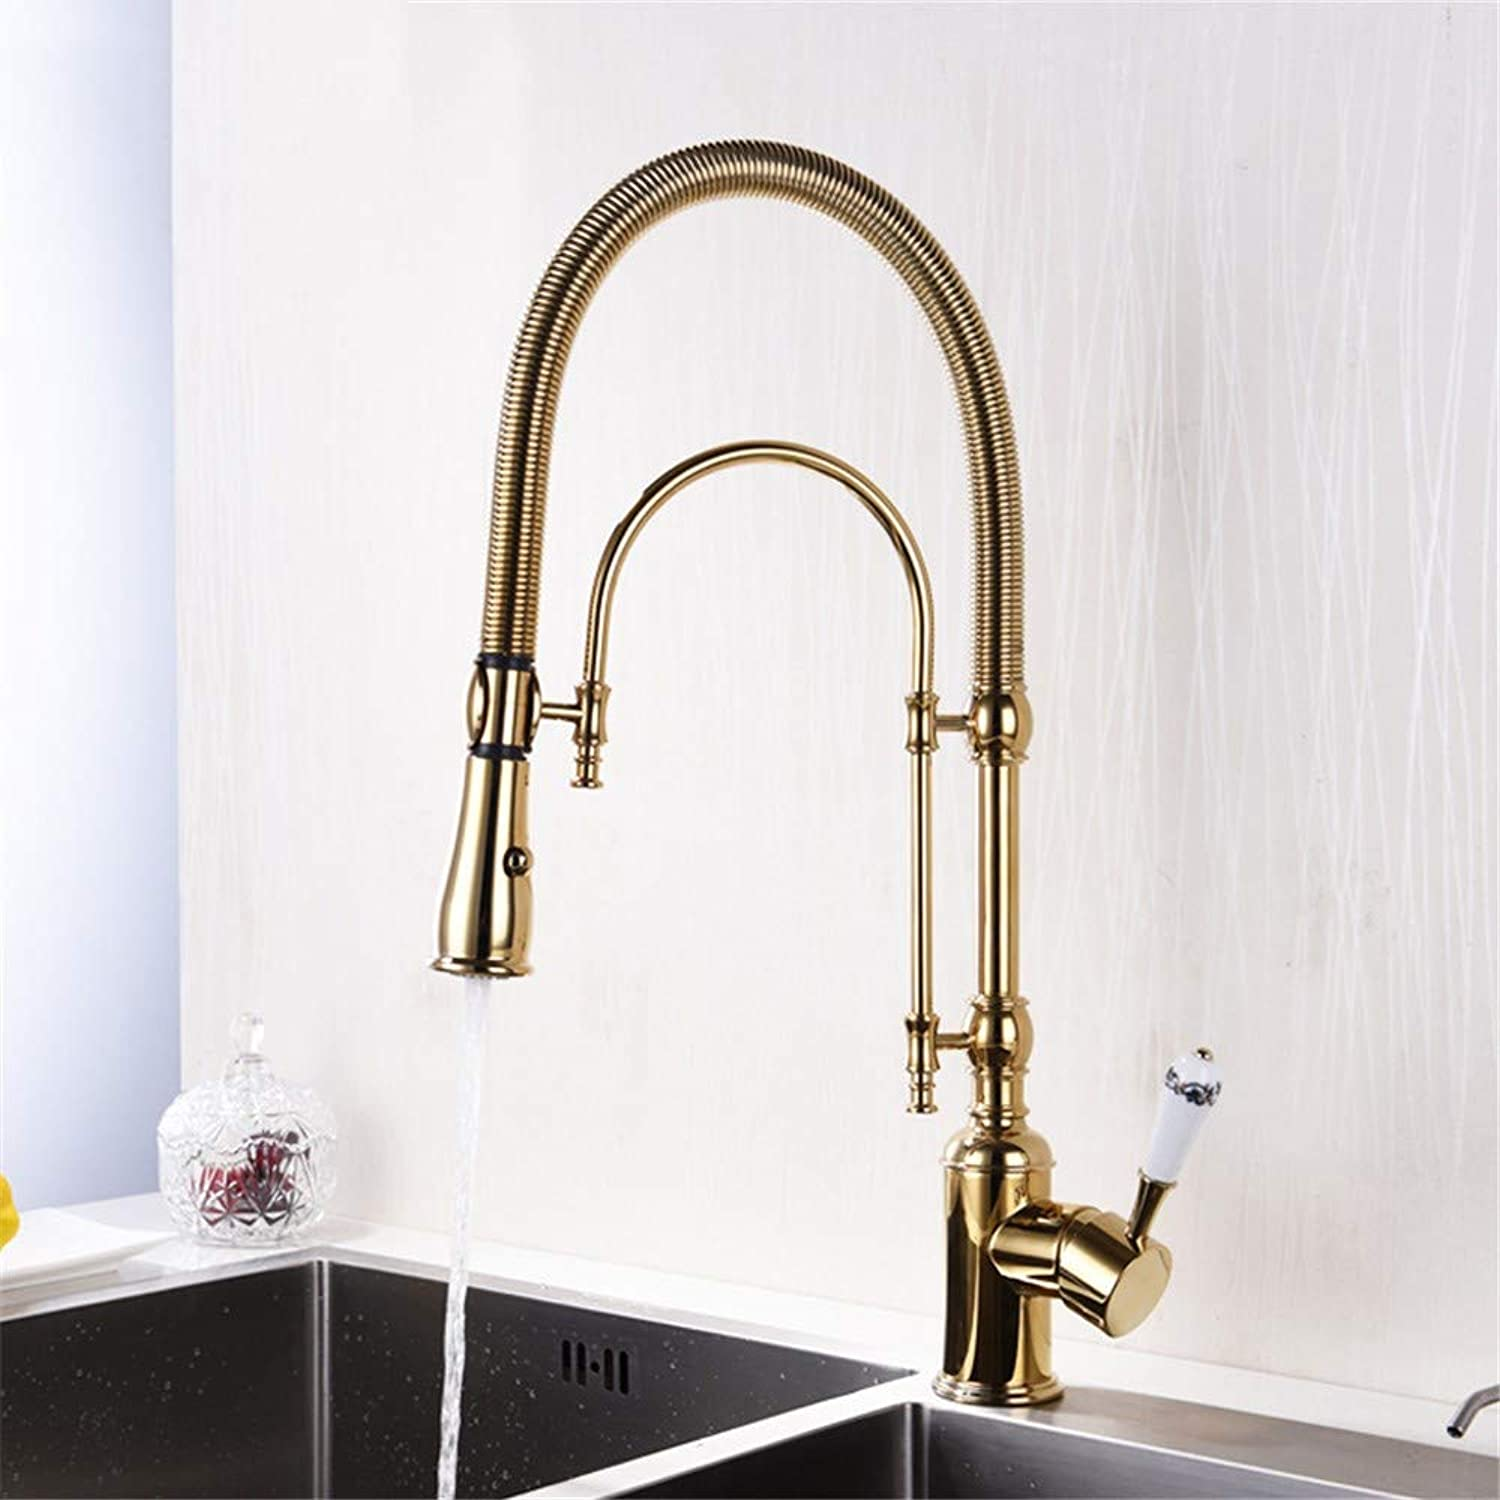 G-FT Hot and Cold Water tap Brass Faucet Stainless Steel Faucet Copper gold Spring Kitchen Faucet hot and Cold Sink Faucet Sink Faucet Double Outlet Faucet, A